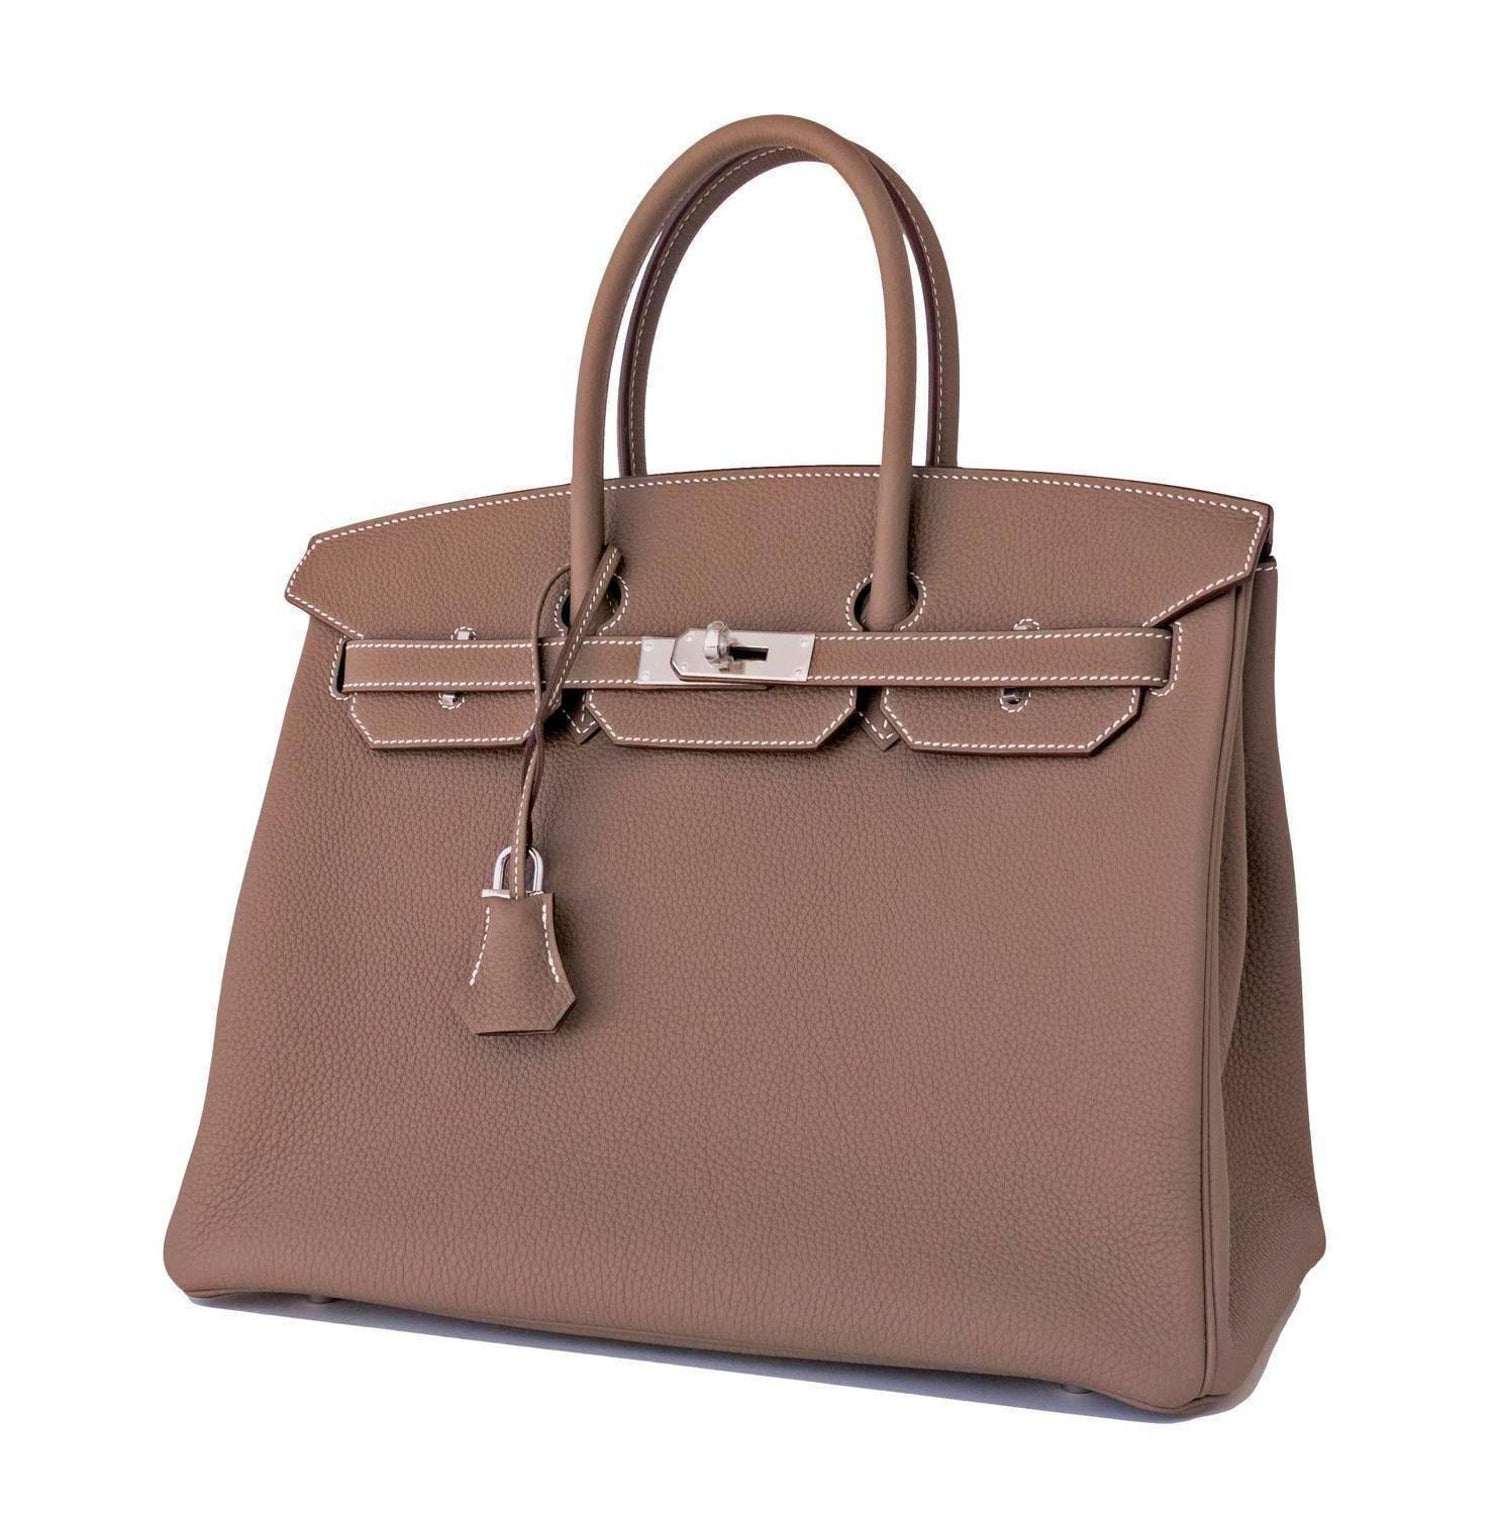 c9e3920c0f Hermes 35cm Etoupe Togo Palladium 2018 C Stamp Birkin bag For Sale at  1stdibs